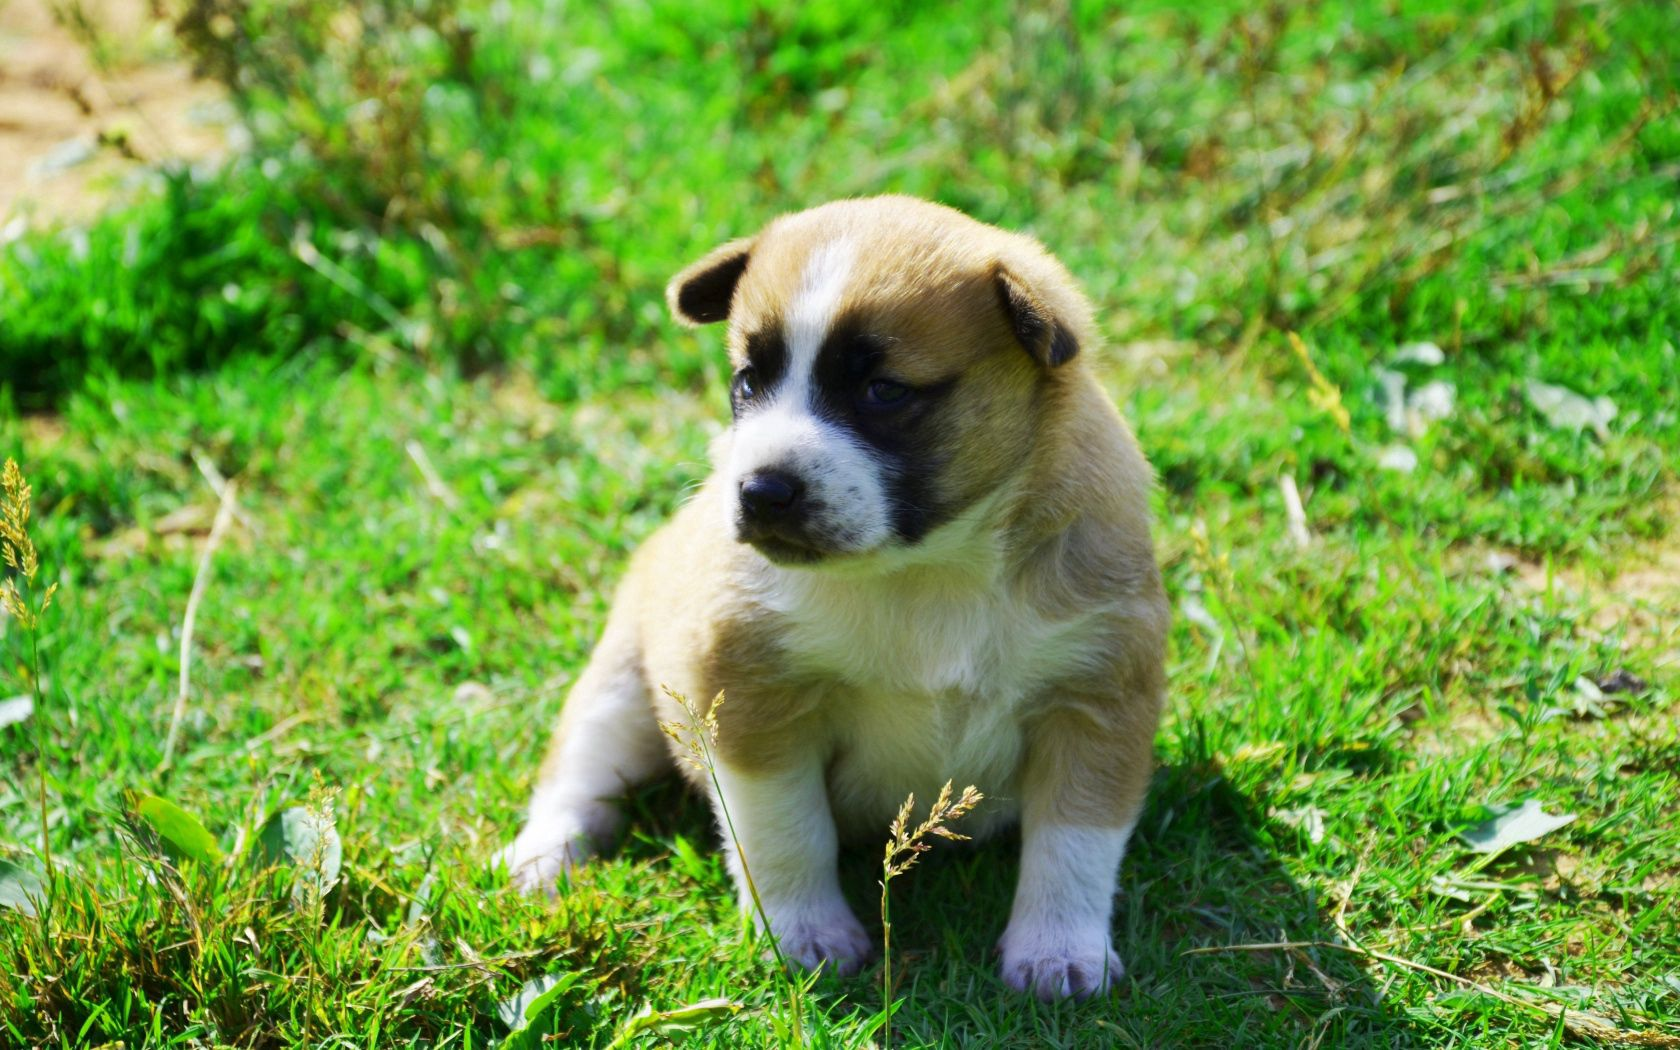 114418 download wallpaper Animals, Dog, Puppy, Grass, Sit, Shadow screensavers and pictures for free